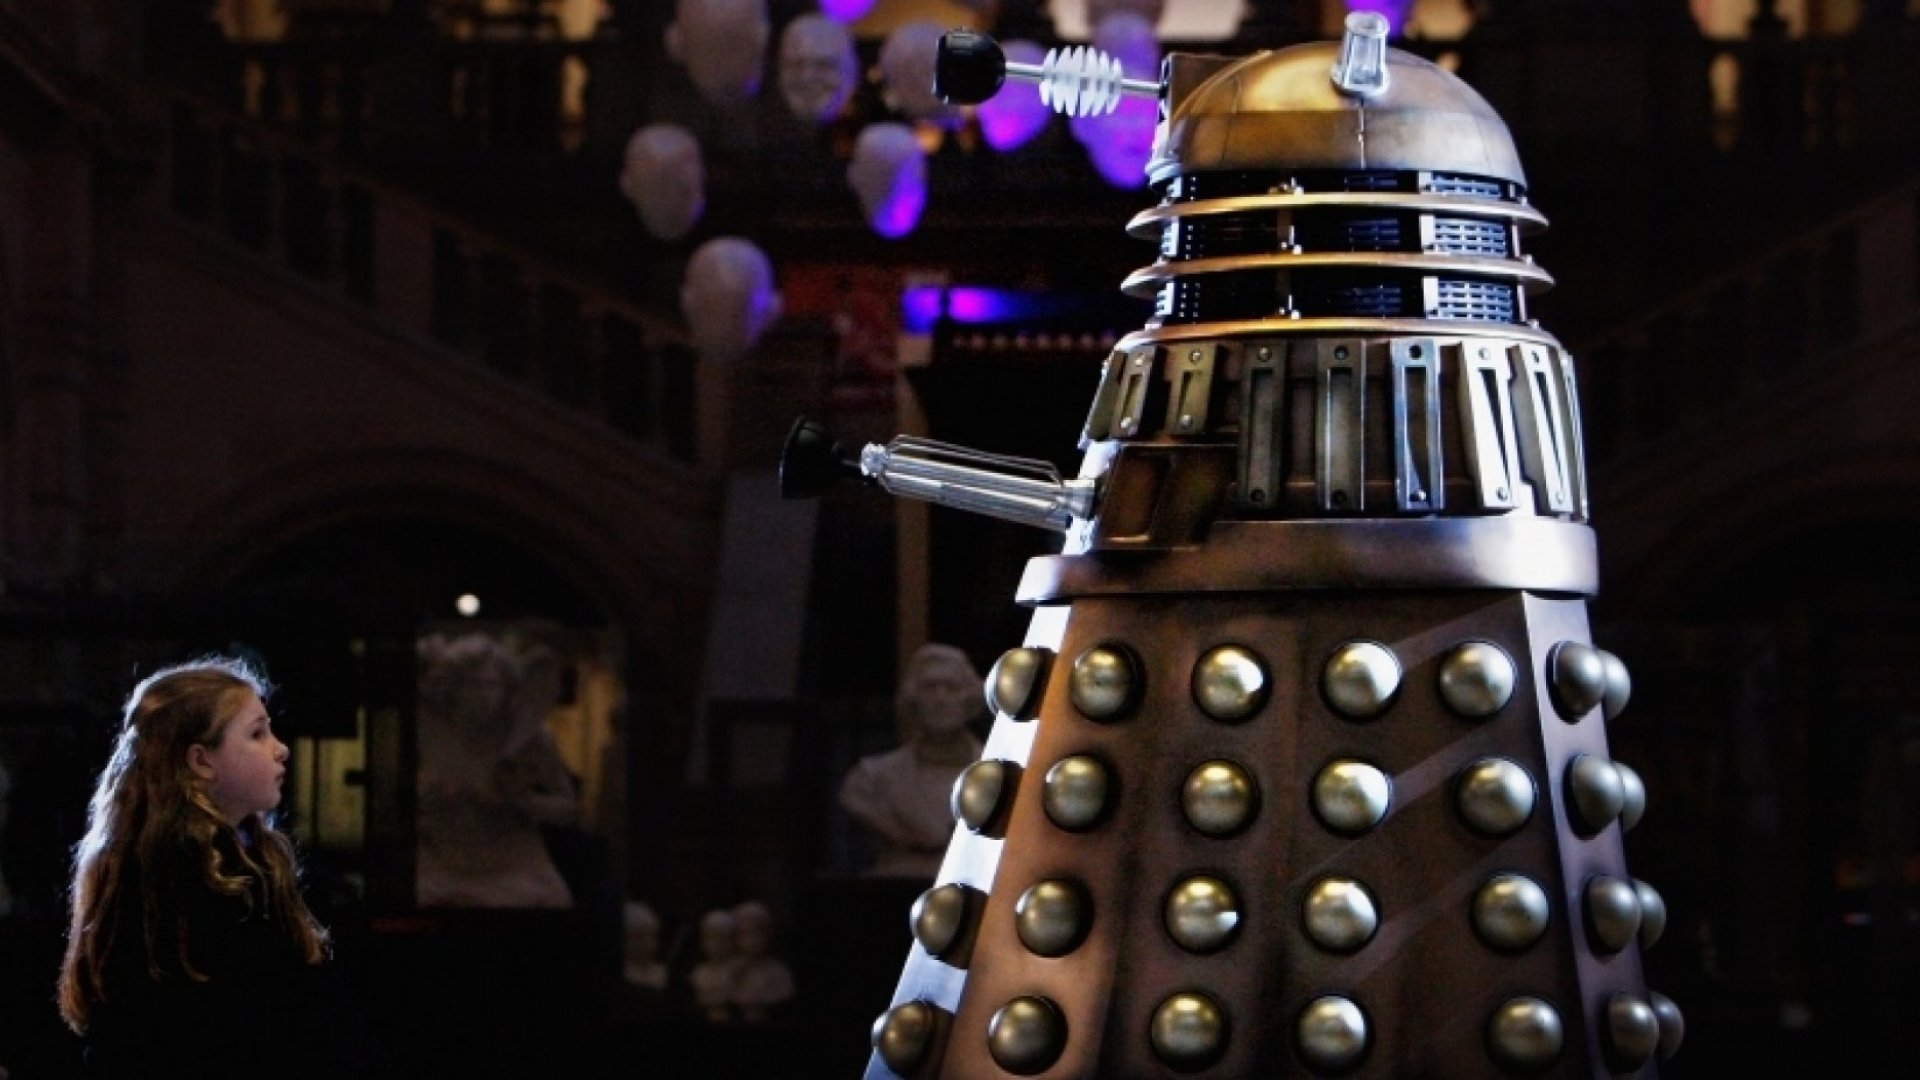 The Top 10 Signs Your HR Manager is Actually A Dalek